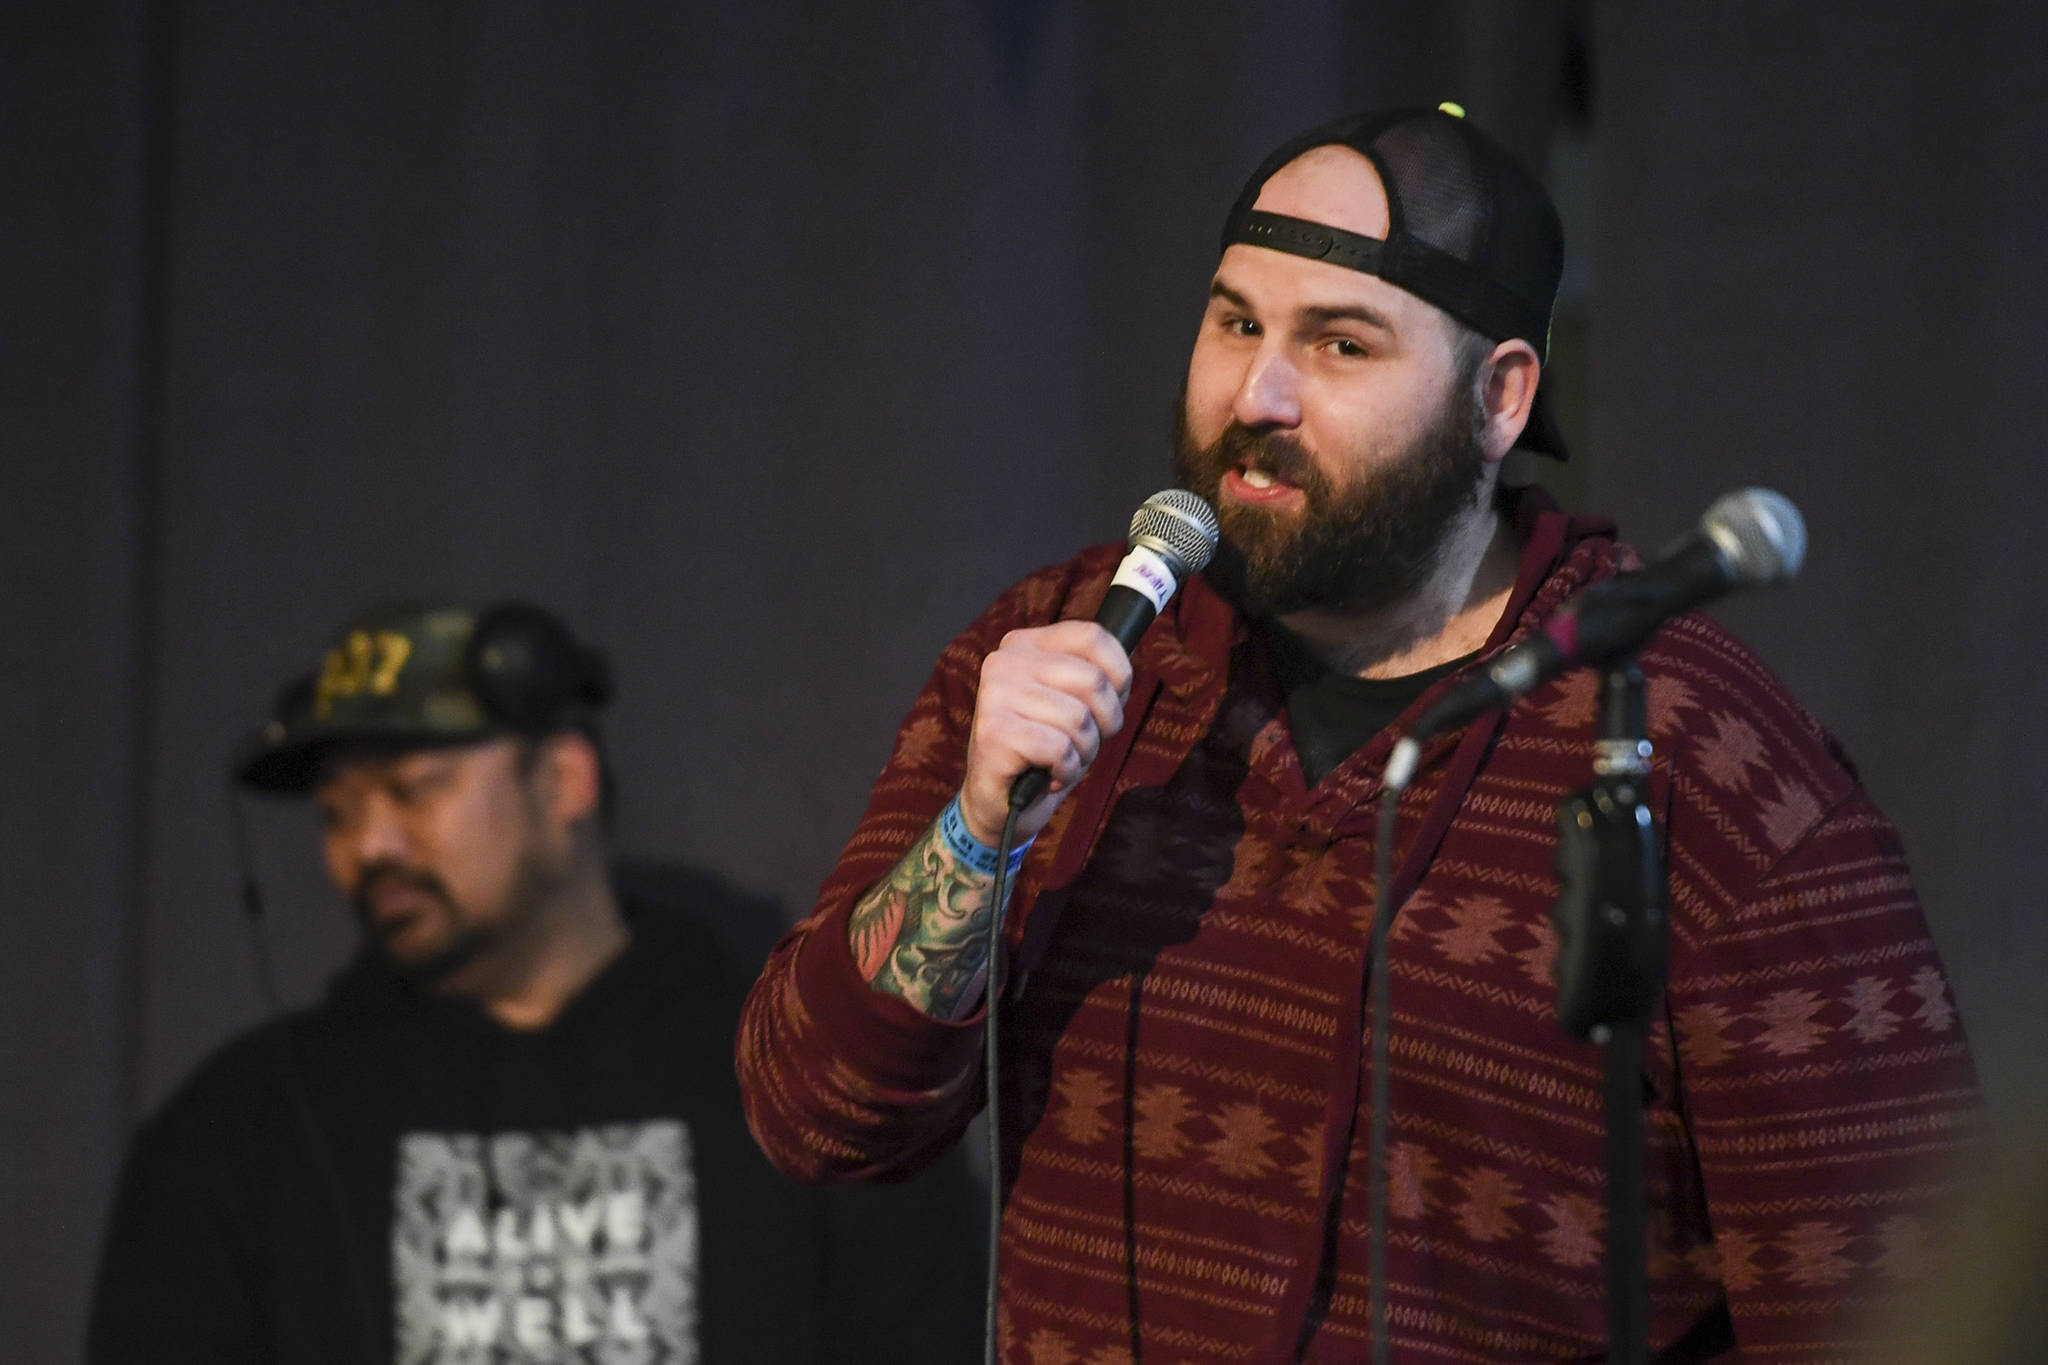 Glenn Ojard performs during the Killah Priest of Wu Tang Southeast Tour at the Juneau Arts & Culture Center on Friday, Dec. 20, 2019. (Michael Penn | Juneau Empire)